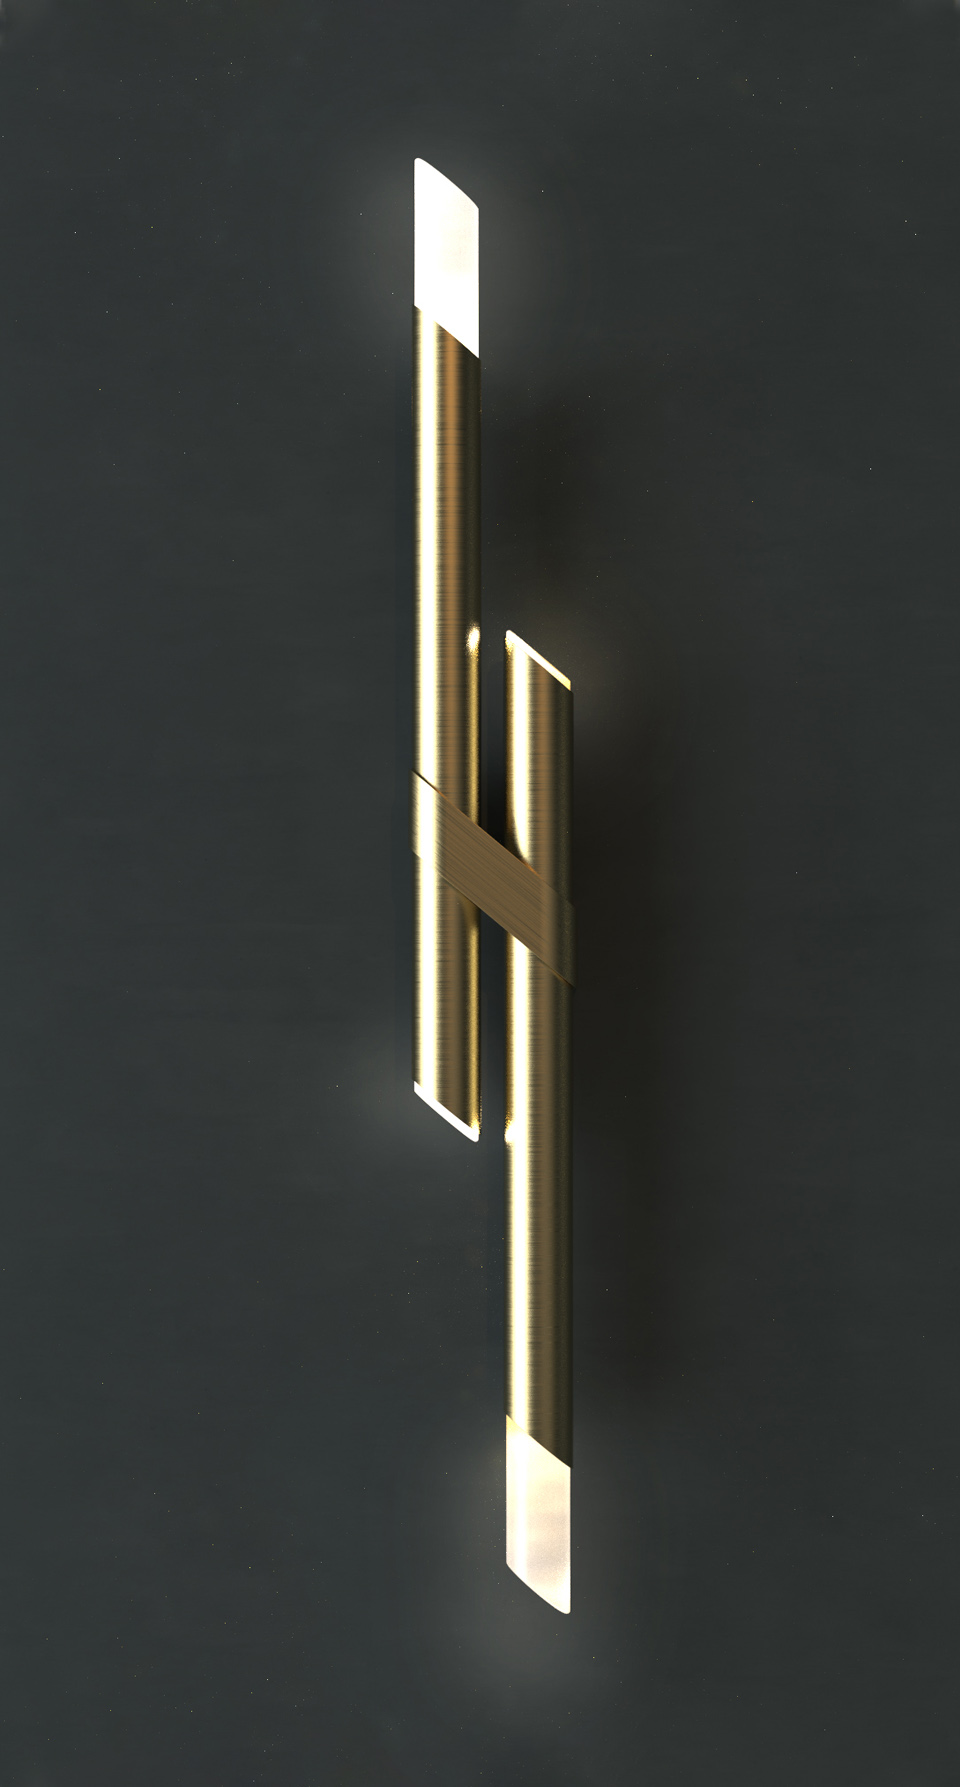 Luxury Bathroom Wall Light Two Slender Brass Rods Asymmetrical Slanted Design Bevelled Edge London Nulty Bespoke